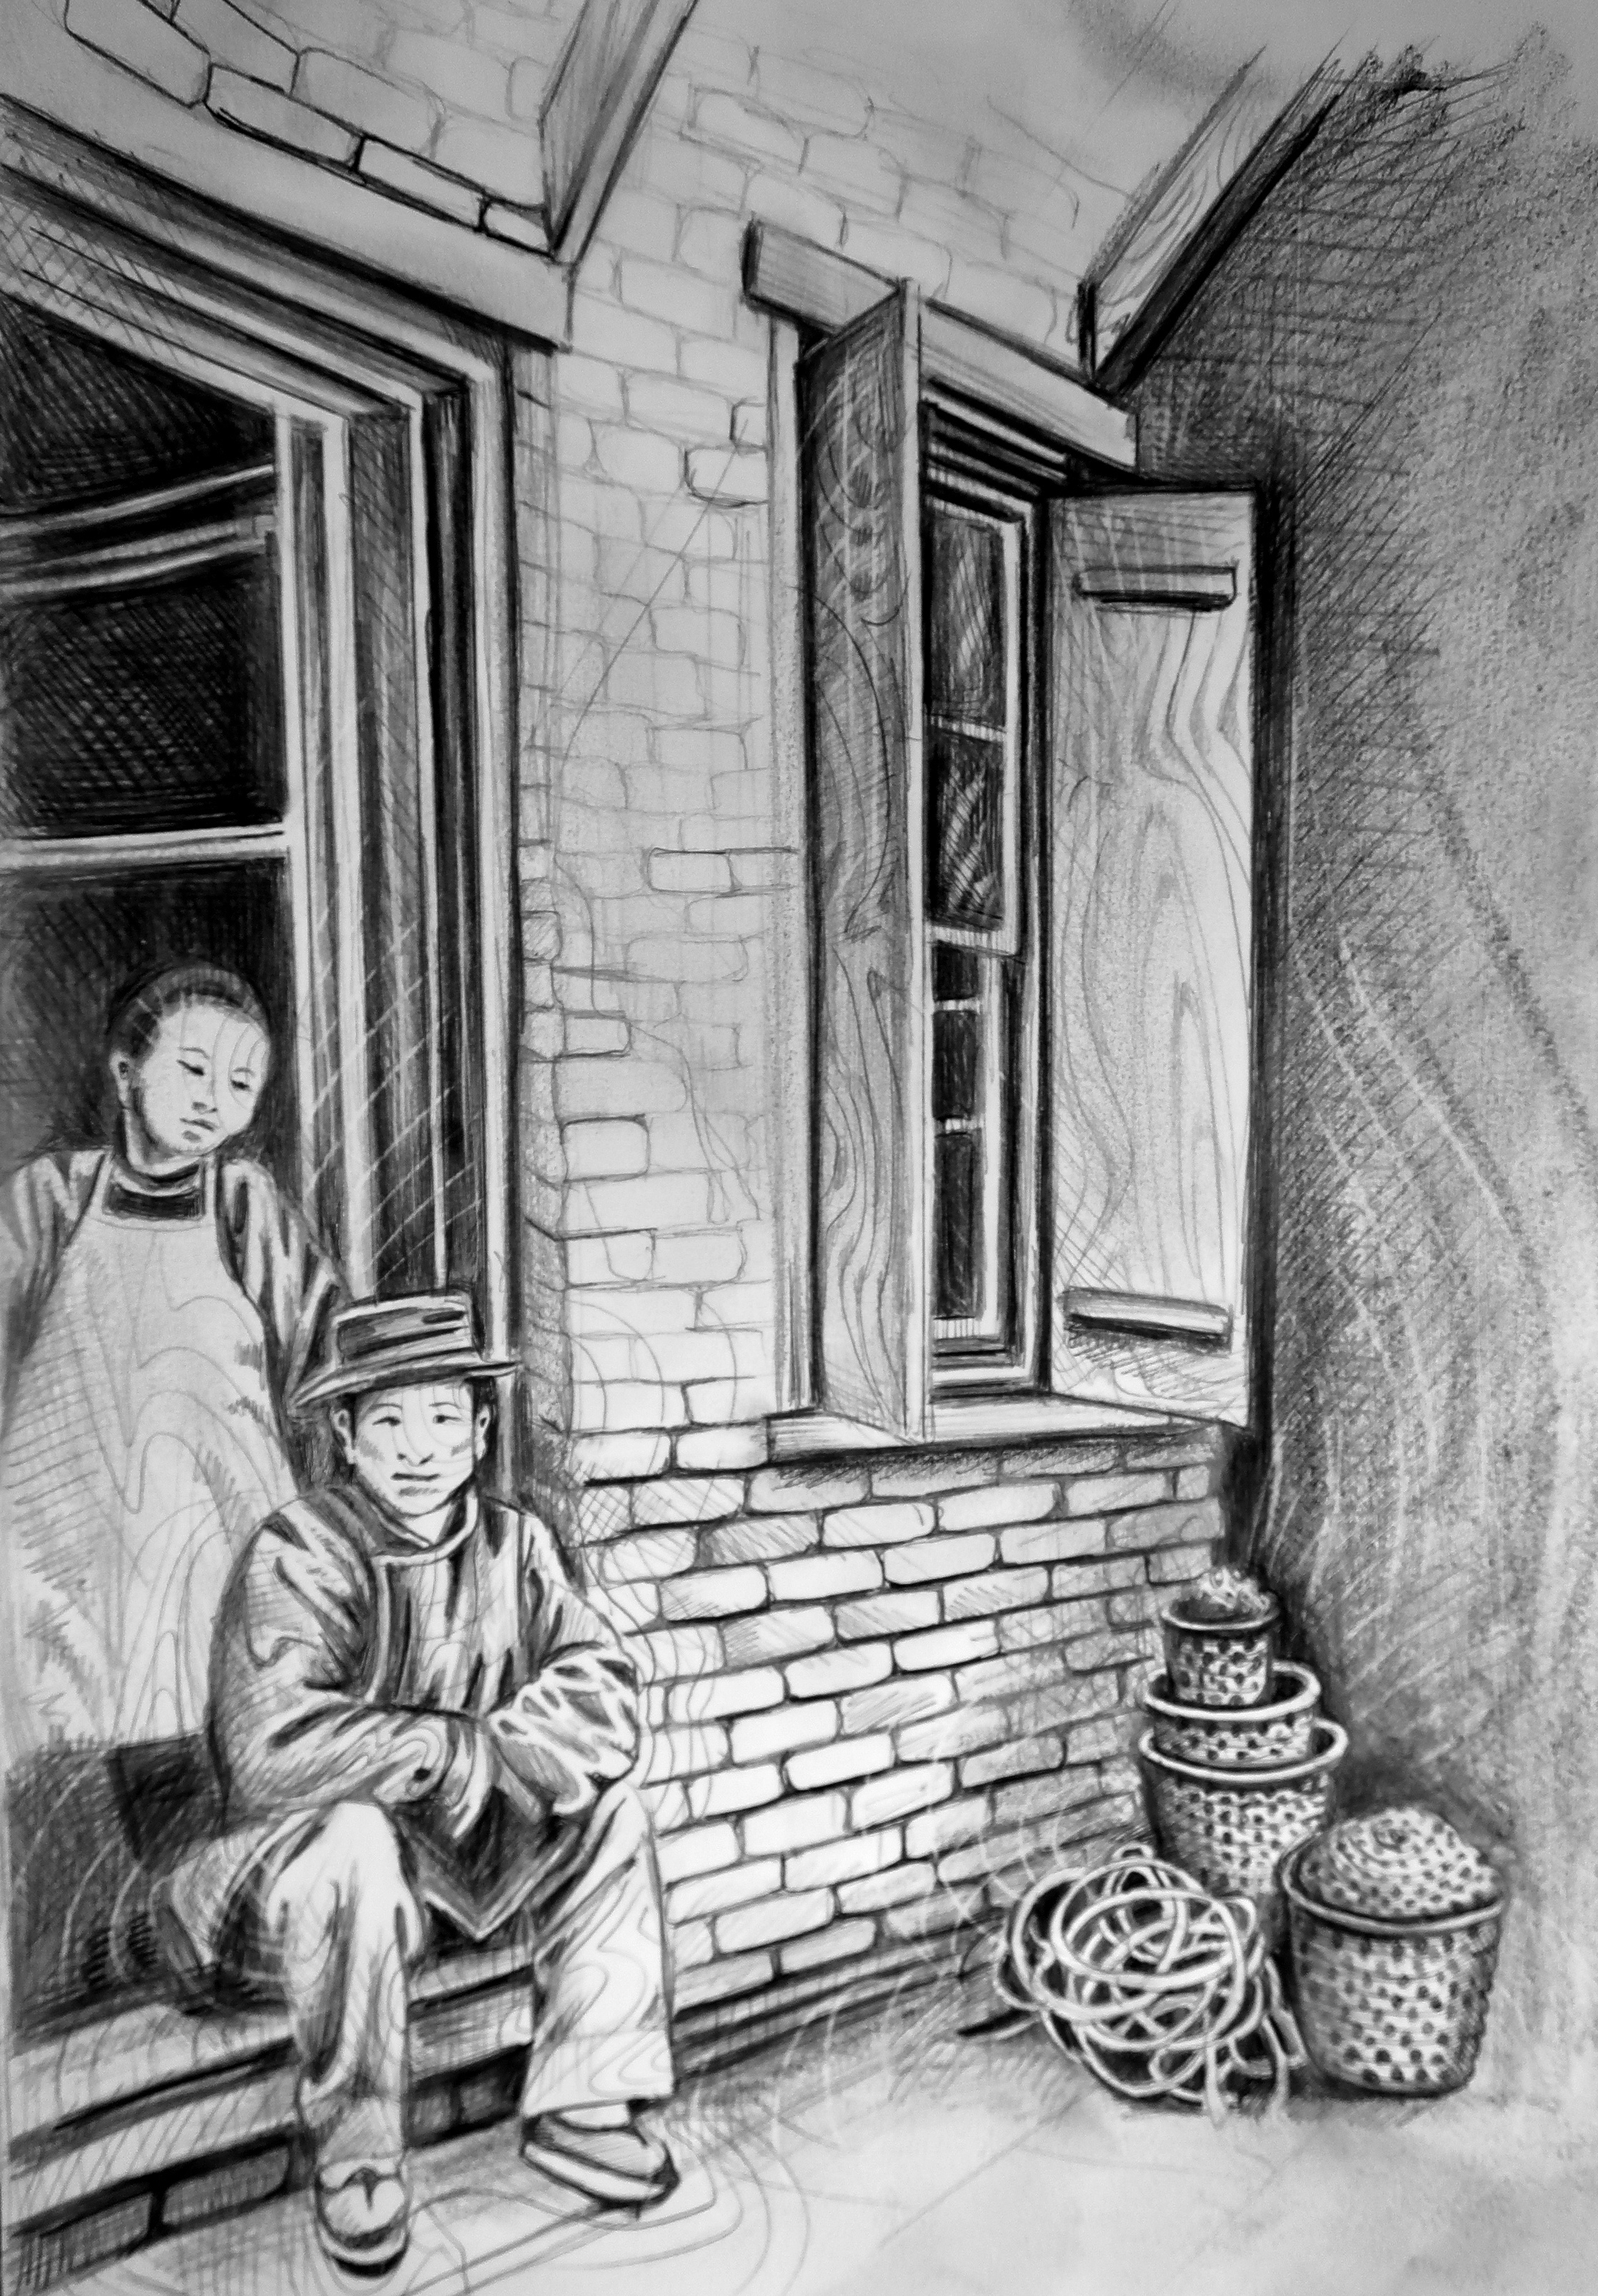 Illustration depicting Old Town's immigrant-rich history